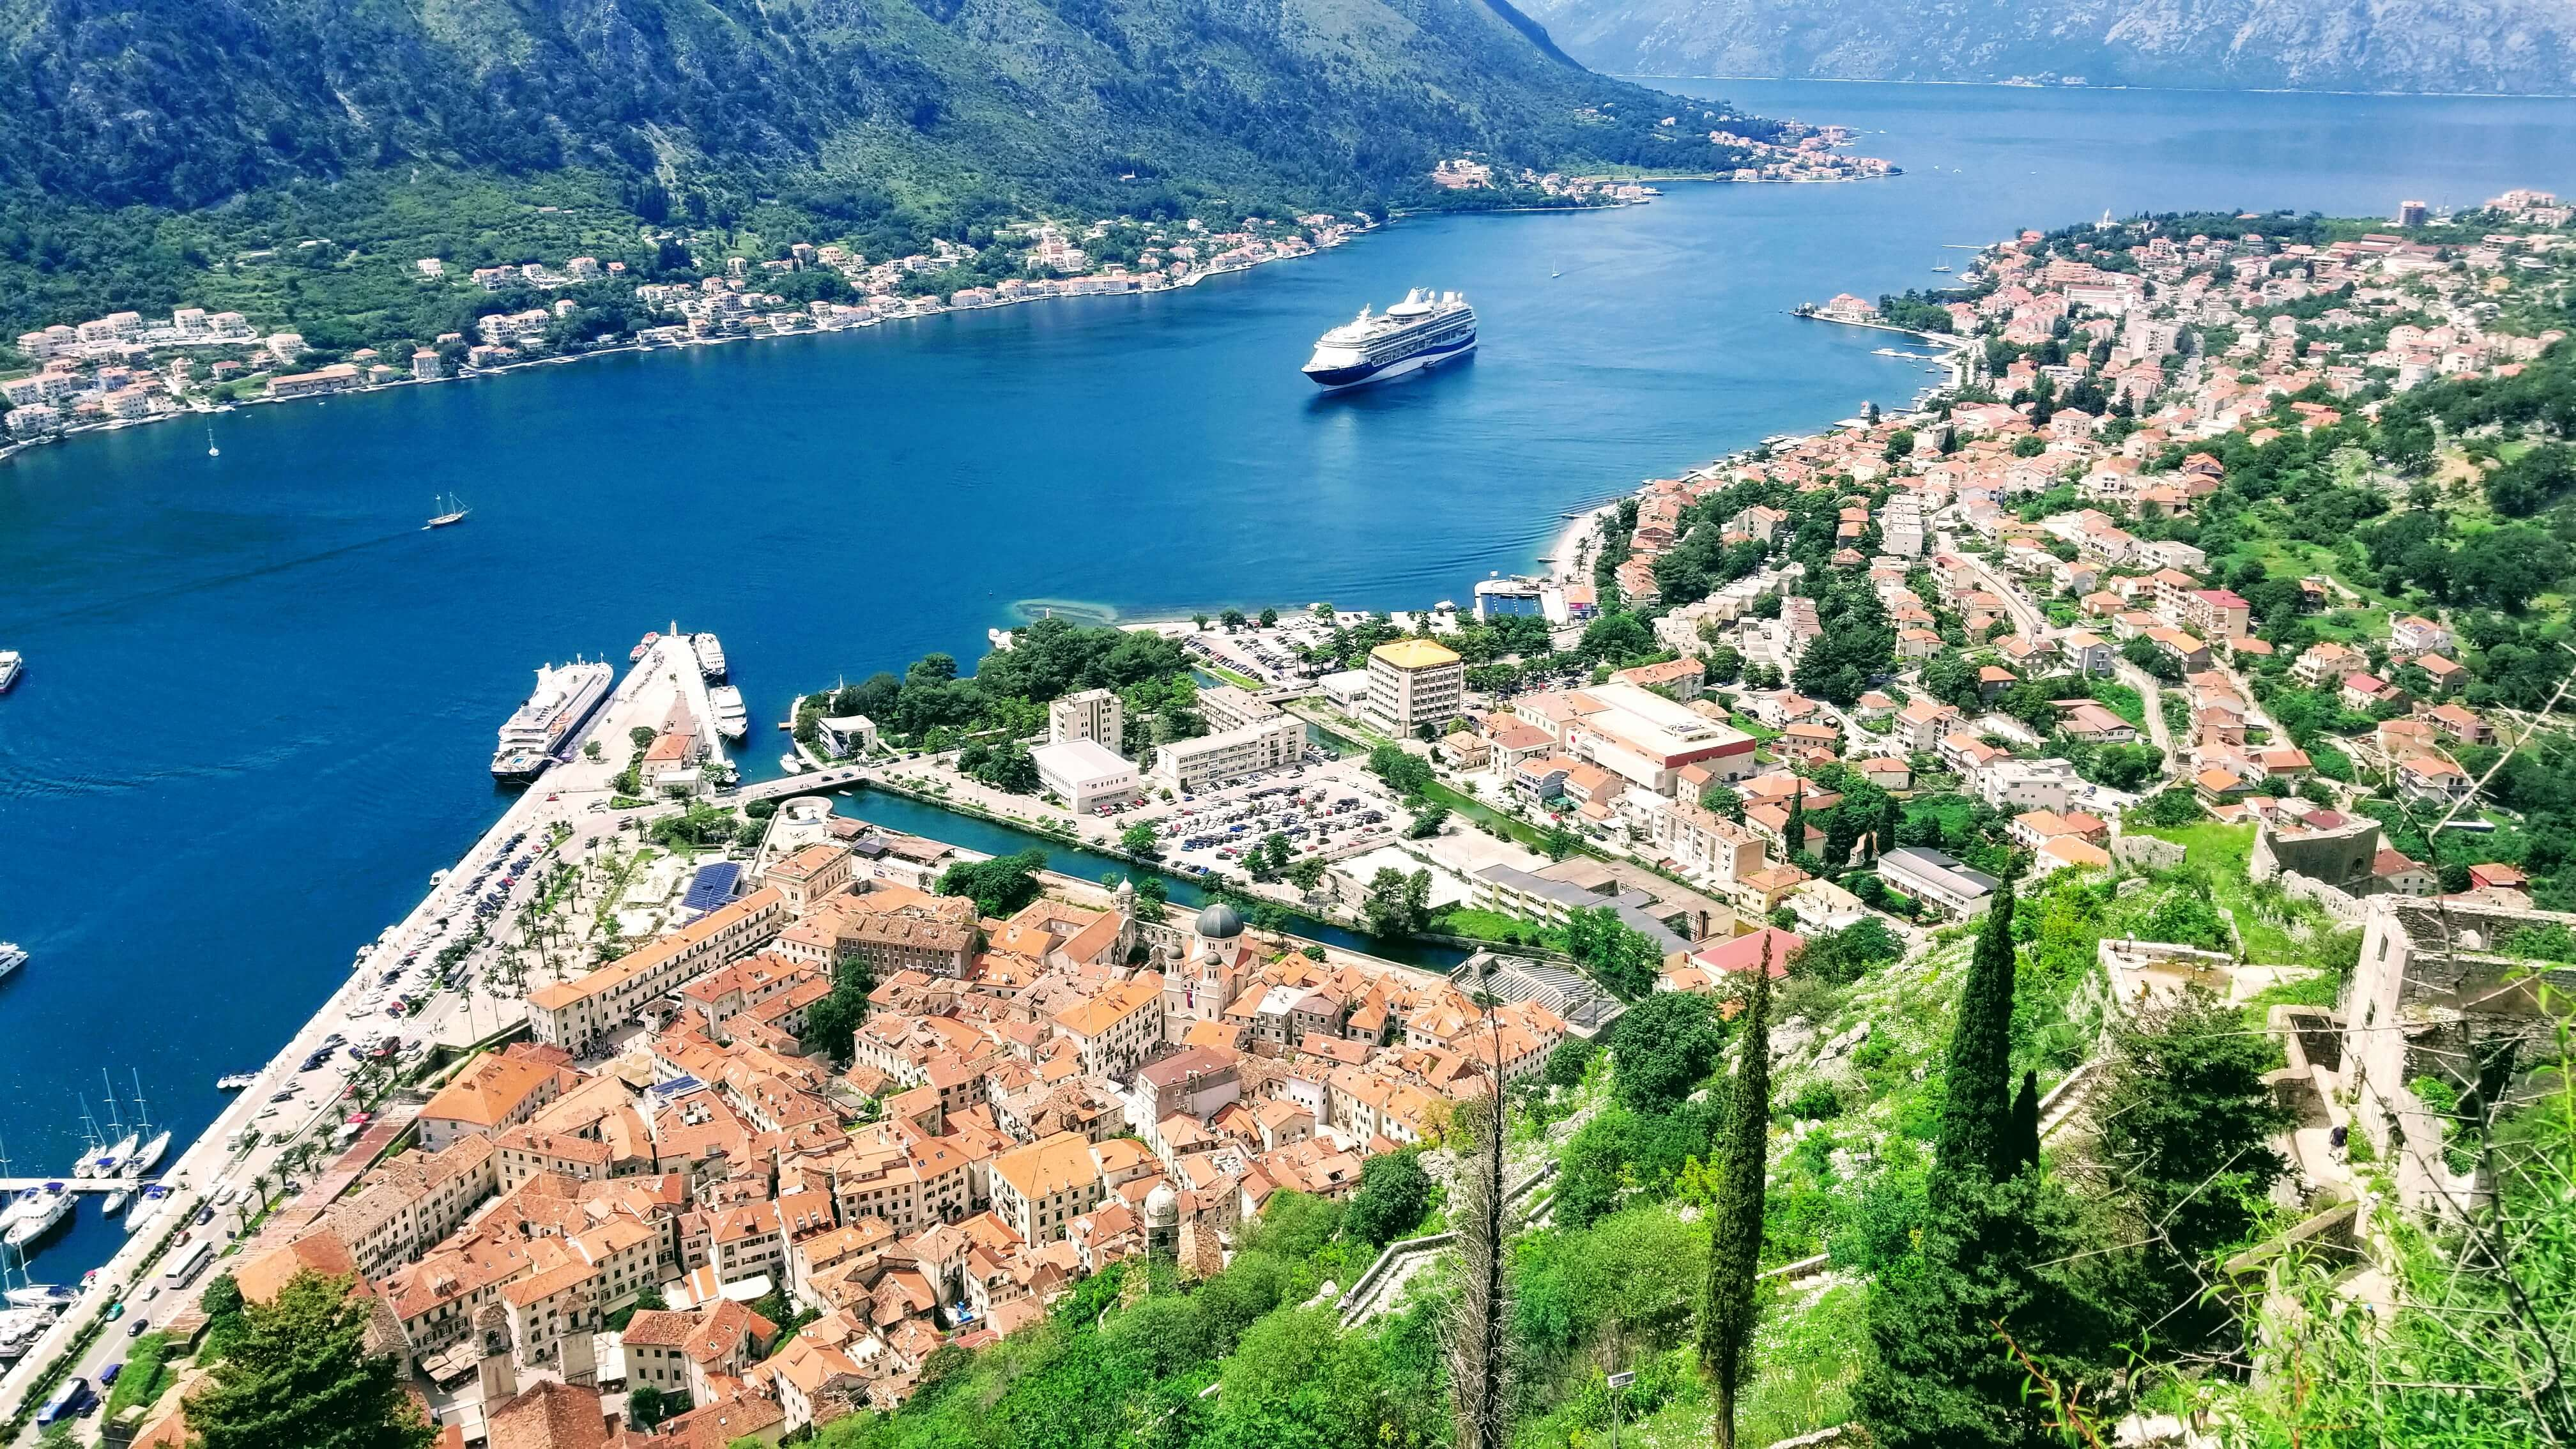 The view of Kotor city from the Fortress